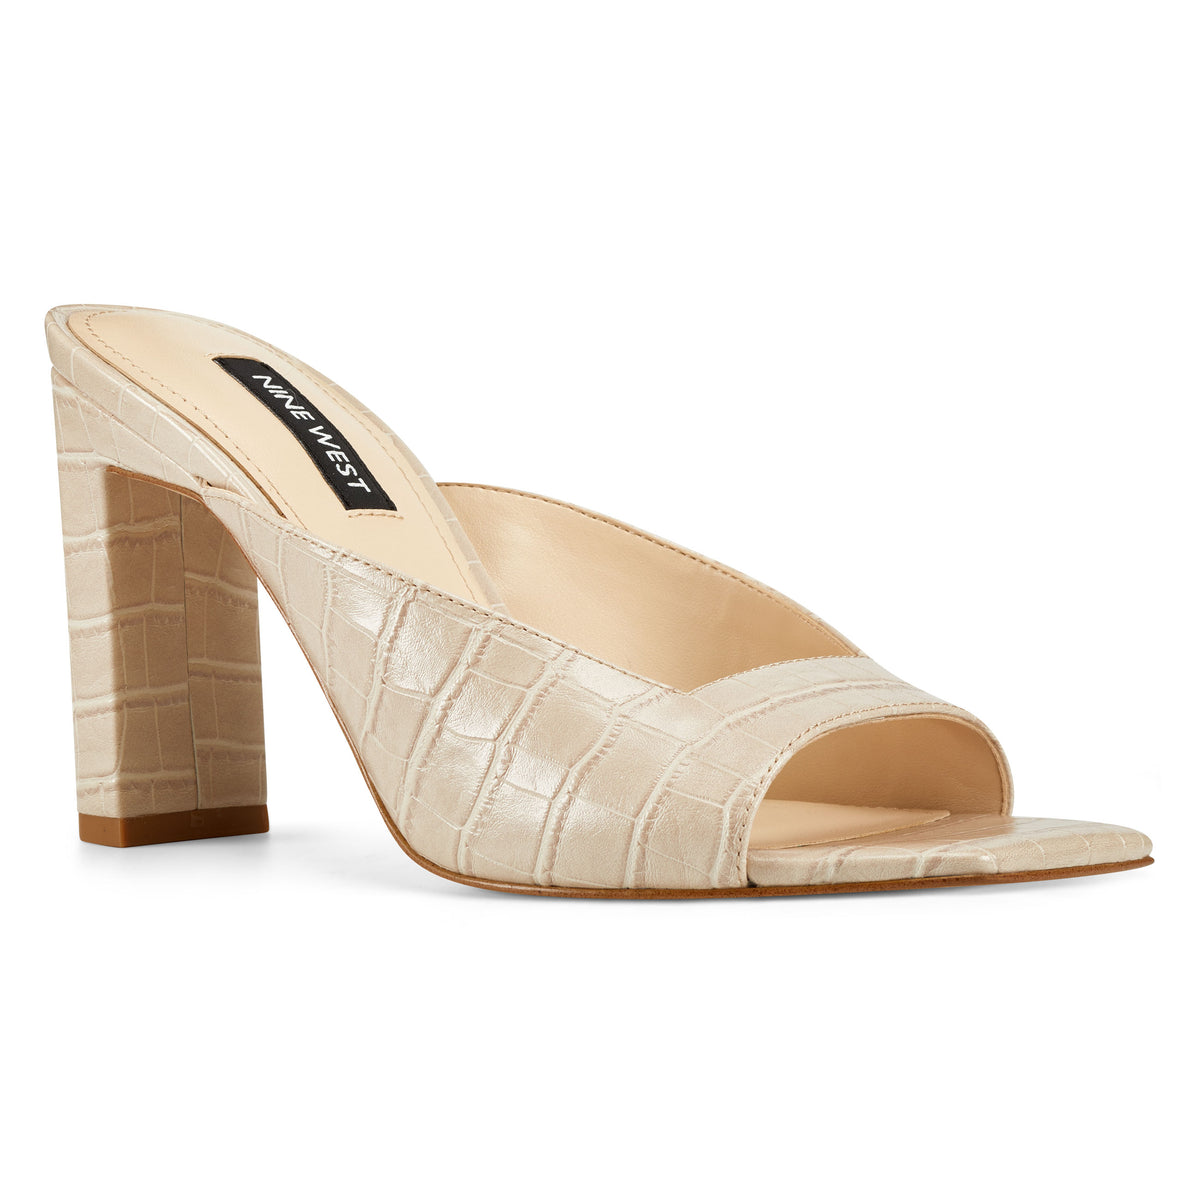 pyper-heeled-slide-sandals-in-natural-embossed-croco